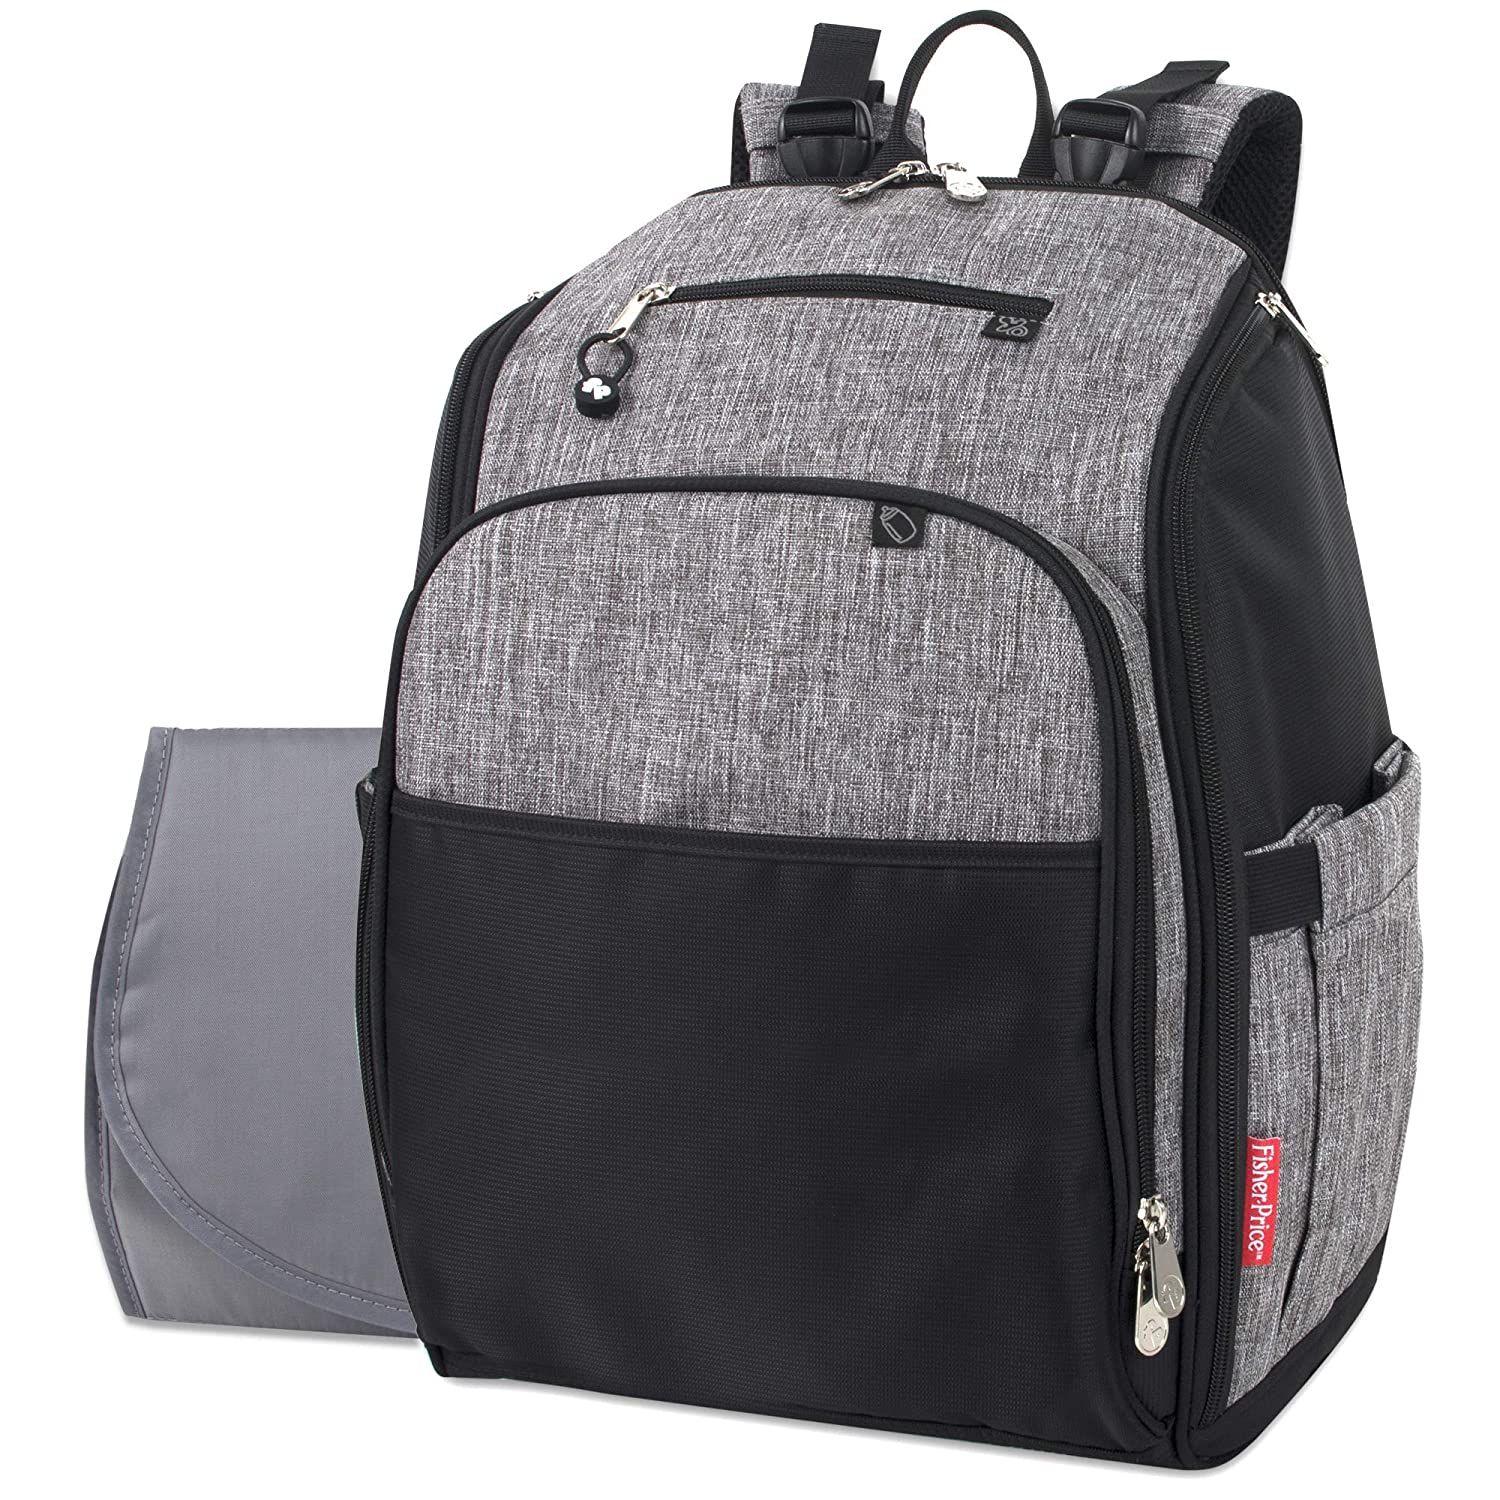 Fisher Price Diaper Bag Backpack with Changing Pad and Stroller Straps, Grey, Large